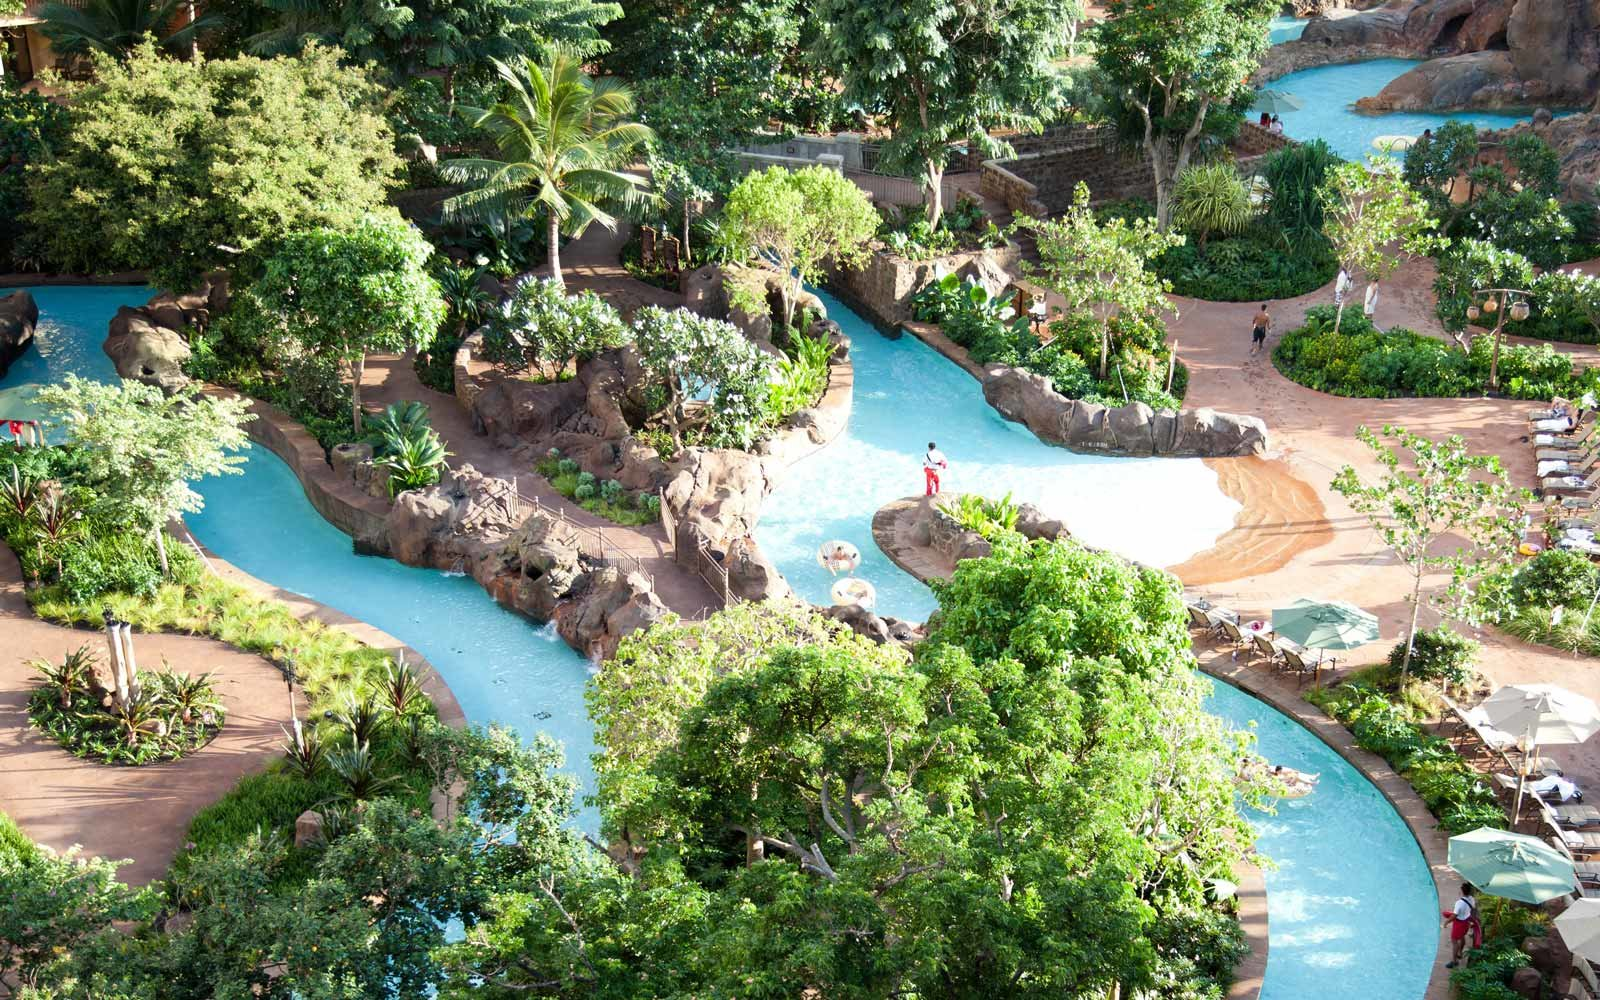 The Worlds Best Hotels And Resorts For Families Travel Leisure - The 9 best family friendly resorts in hawaii